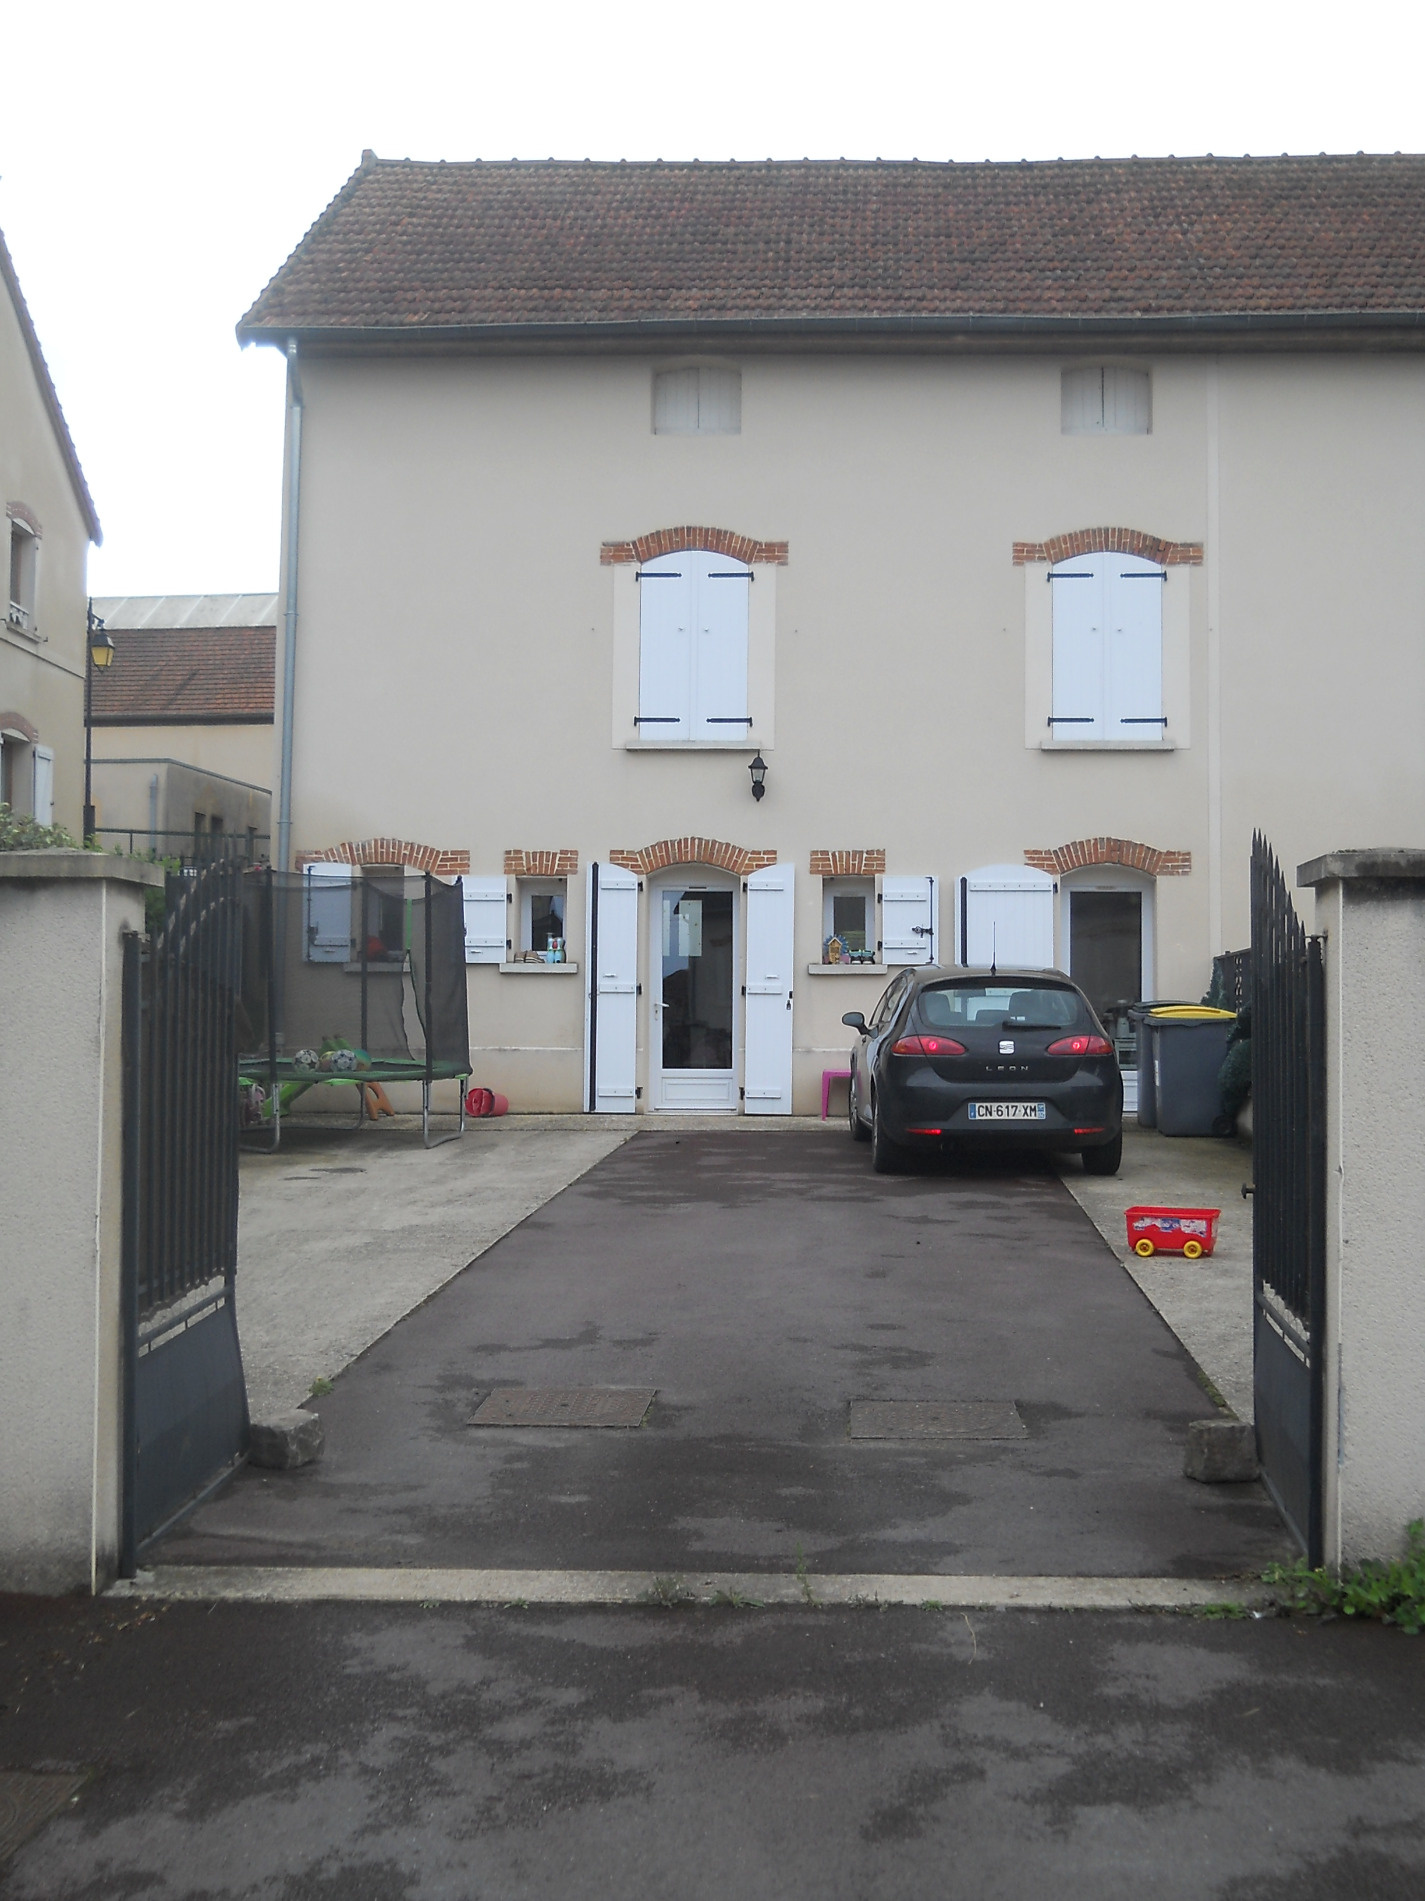 Location charly immobilier for Garage peugeot nogent sur marne